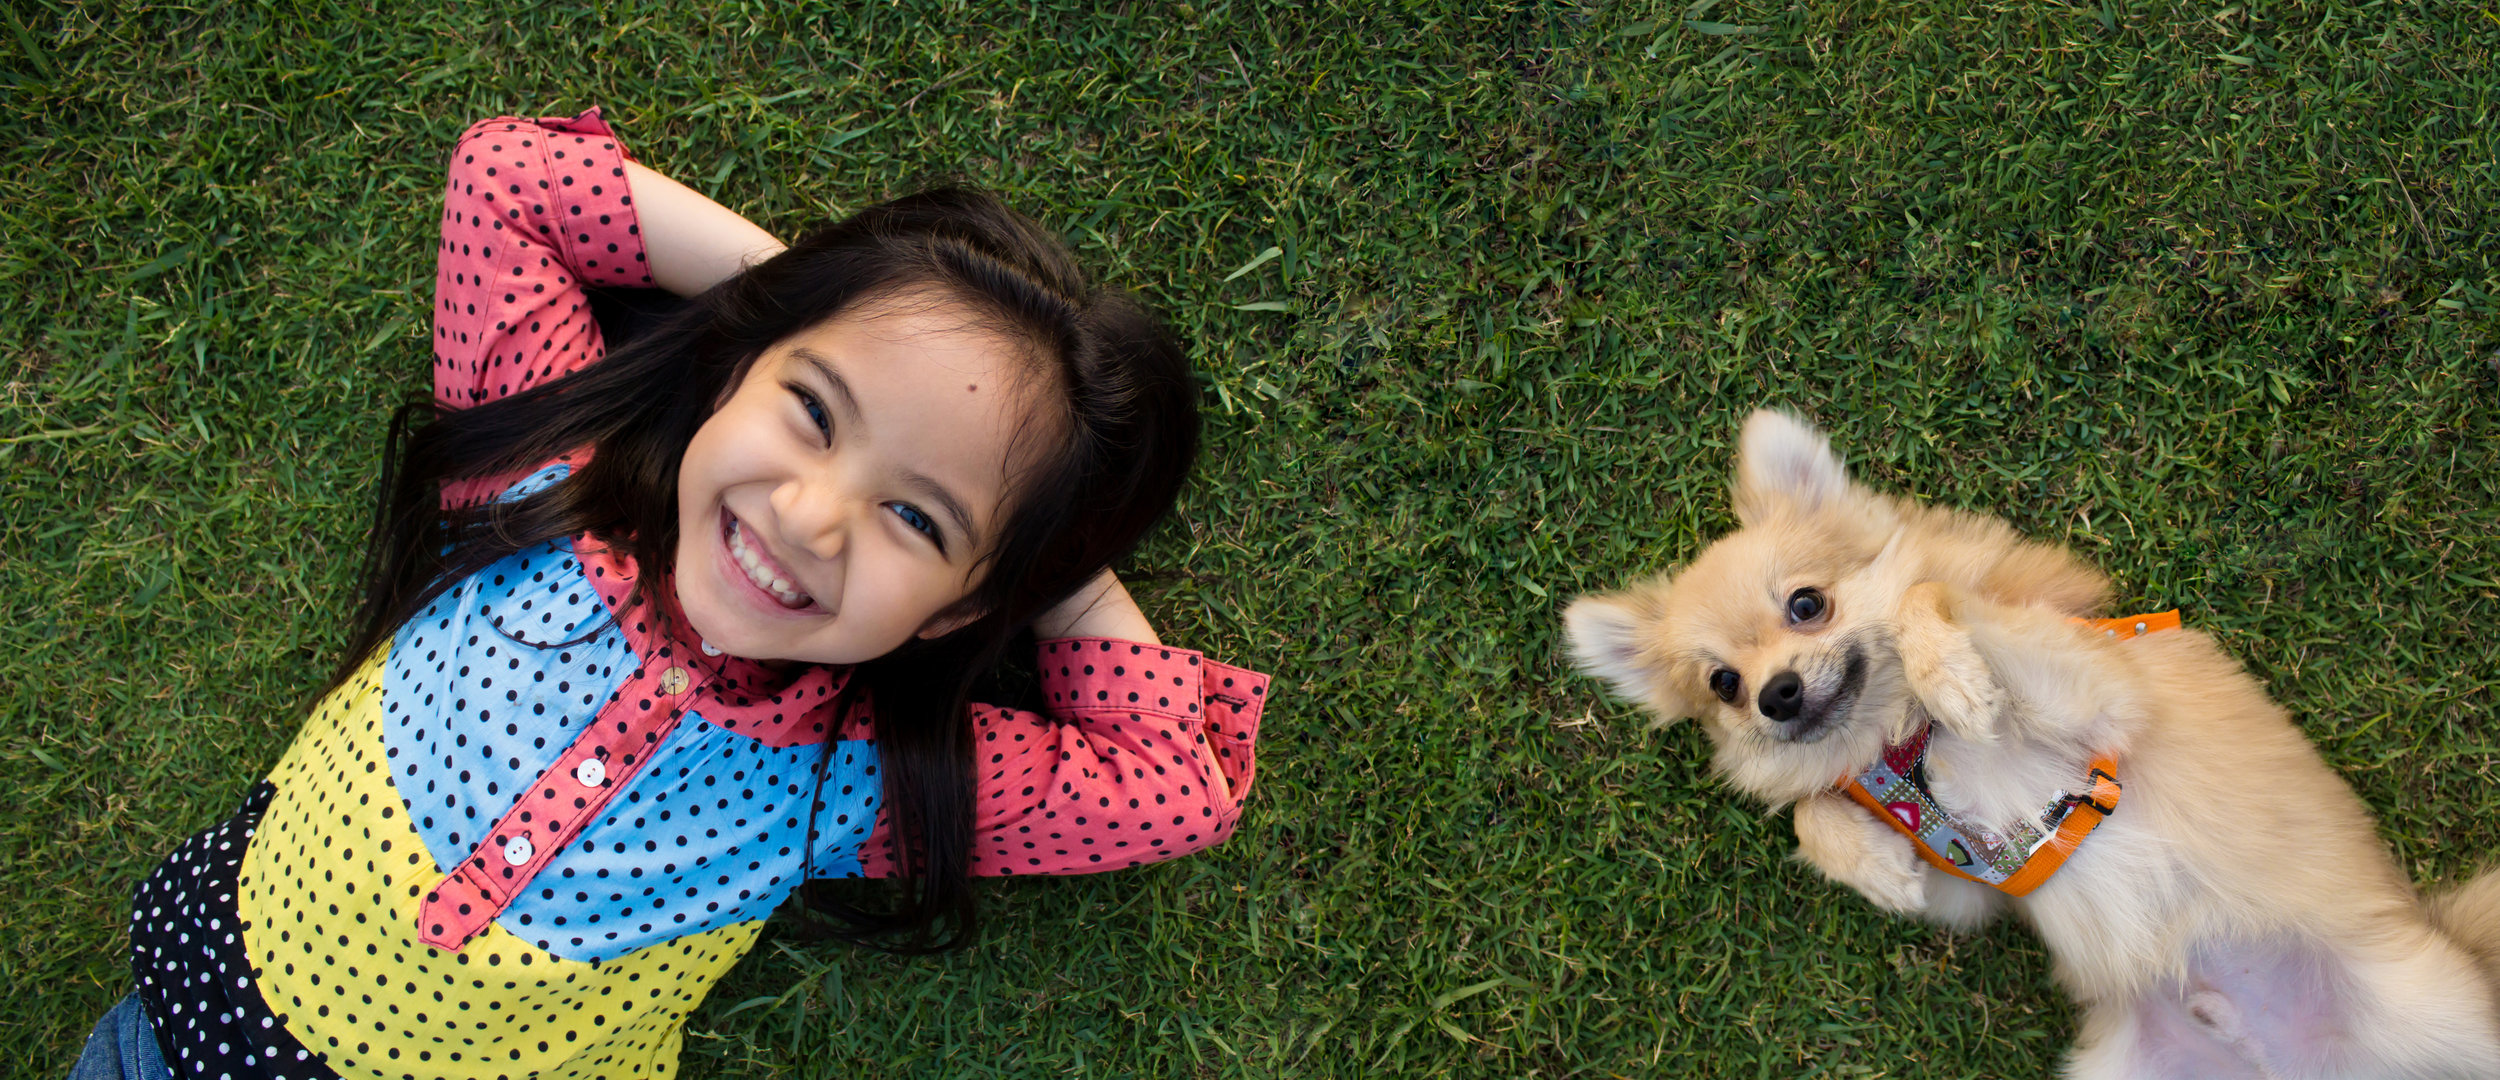 Is a Lawn Fertilizer Service Safe for Your Kids and Pets?